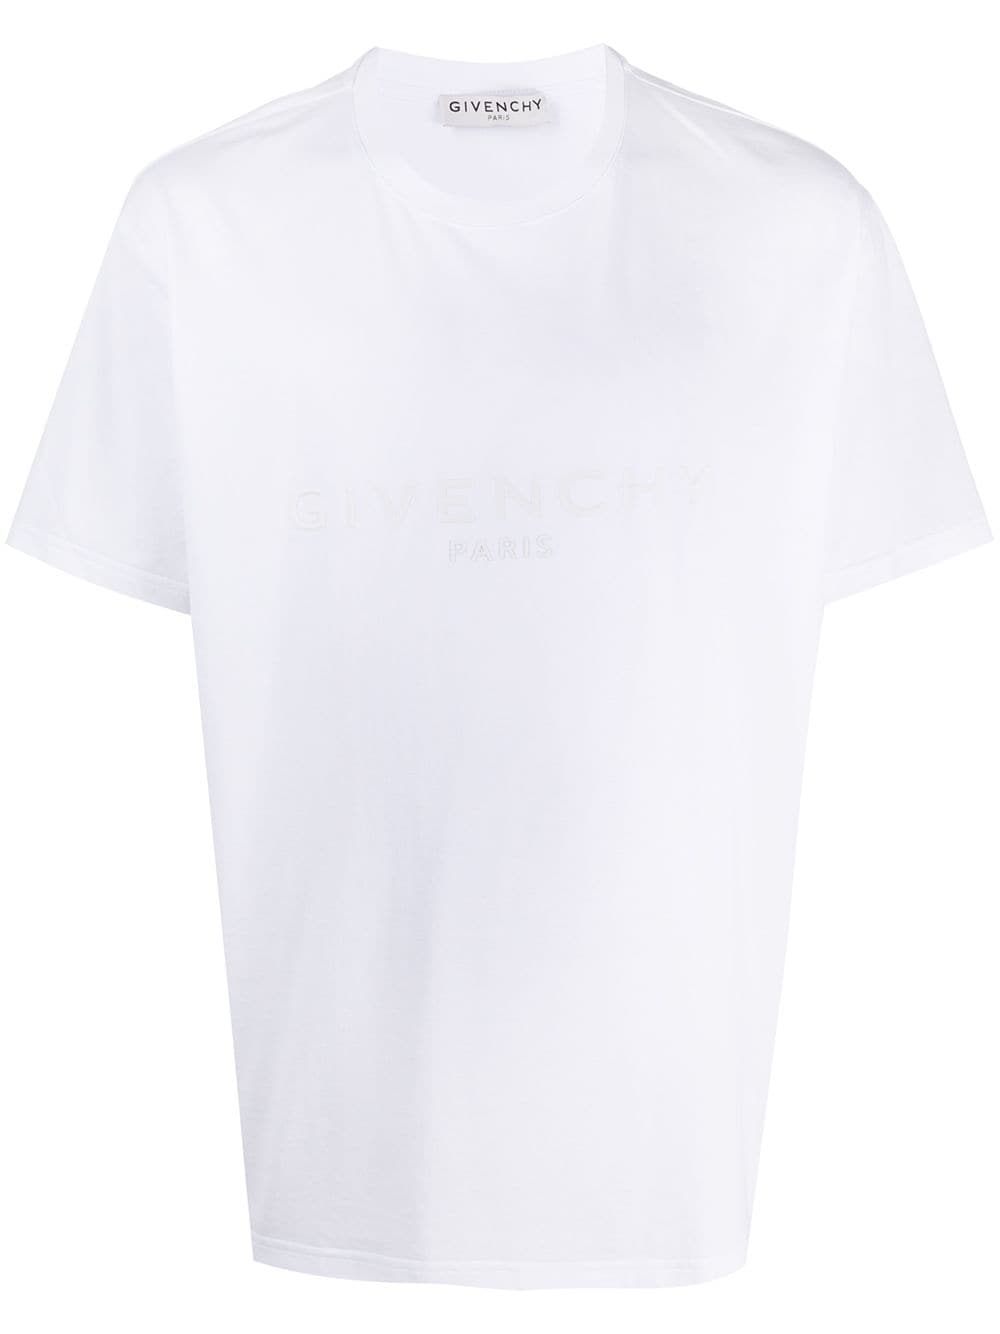 white cotton embroidered Givenchy logo t-shirt featuring tonal stitching GIVENCHY      BM70YN3002100